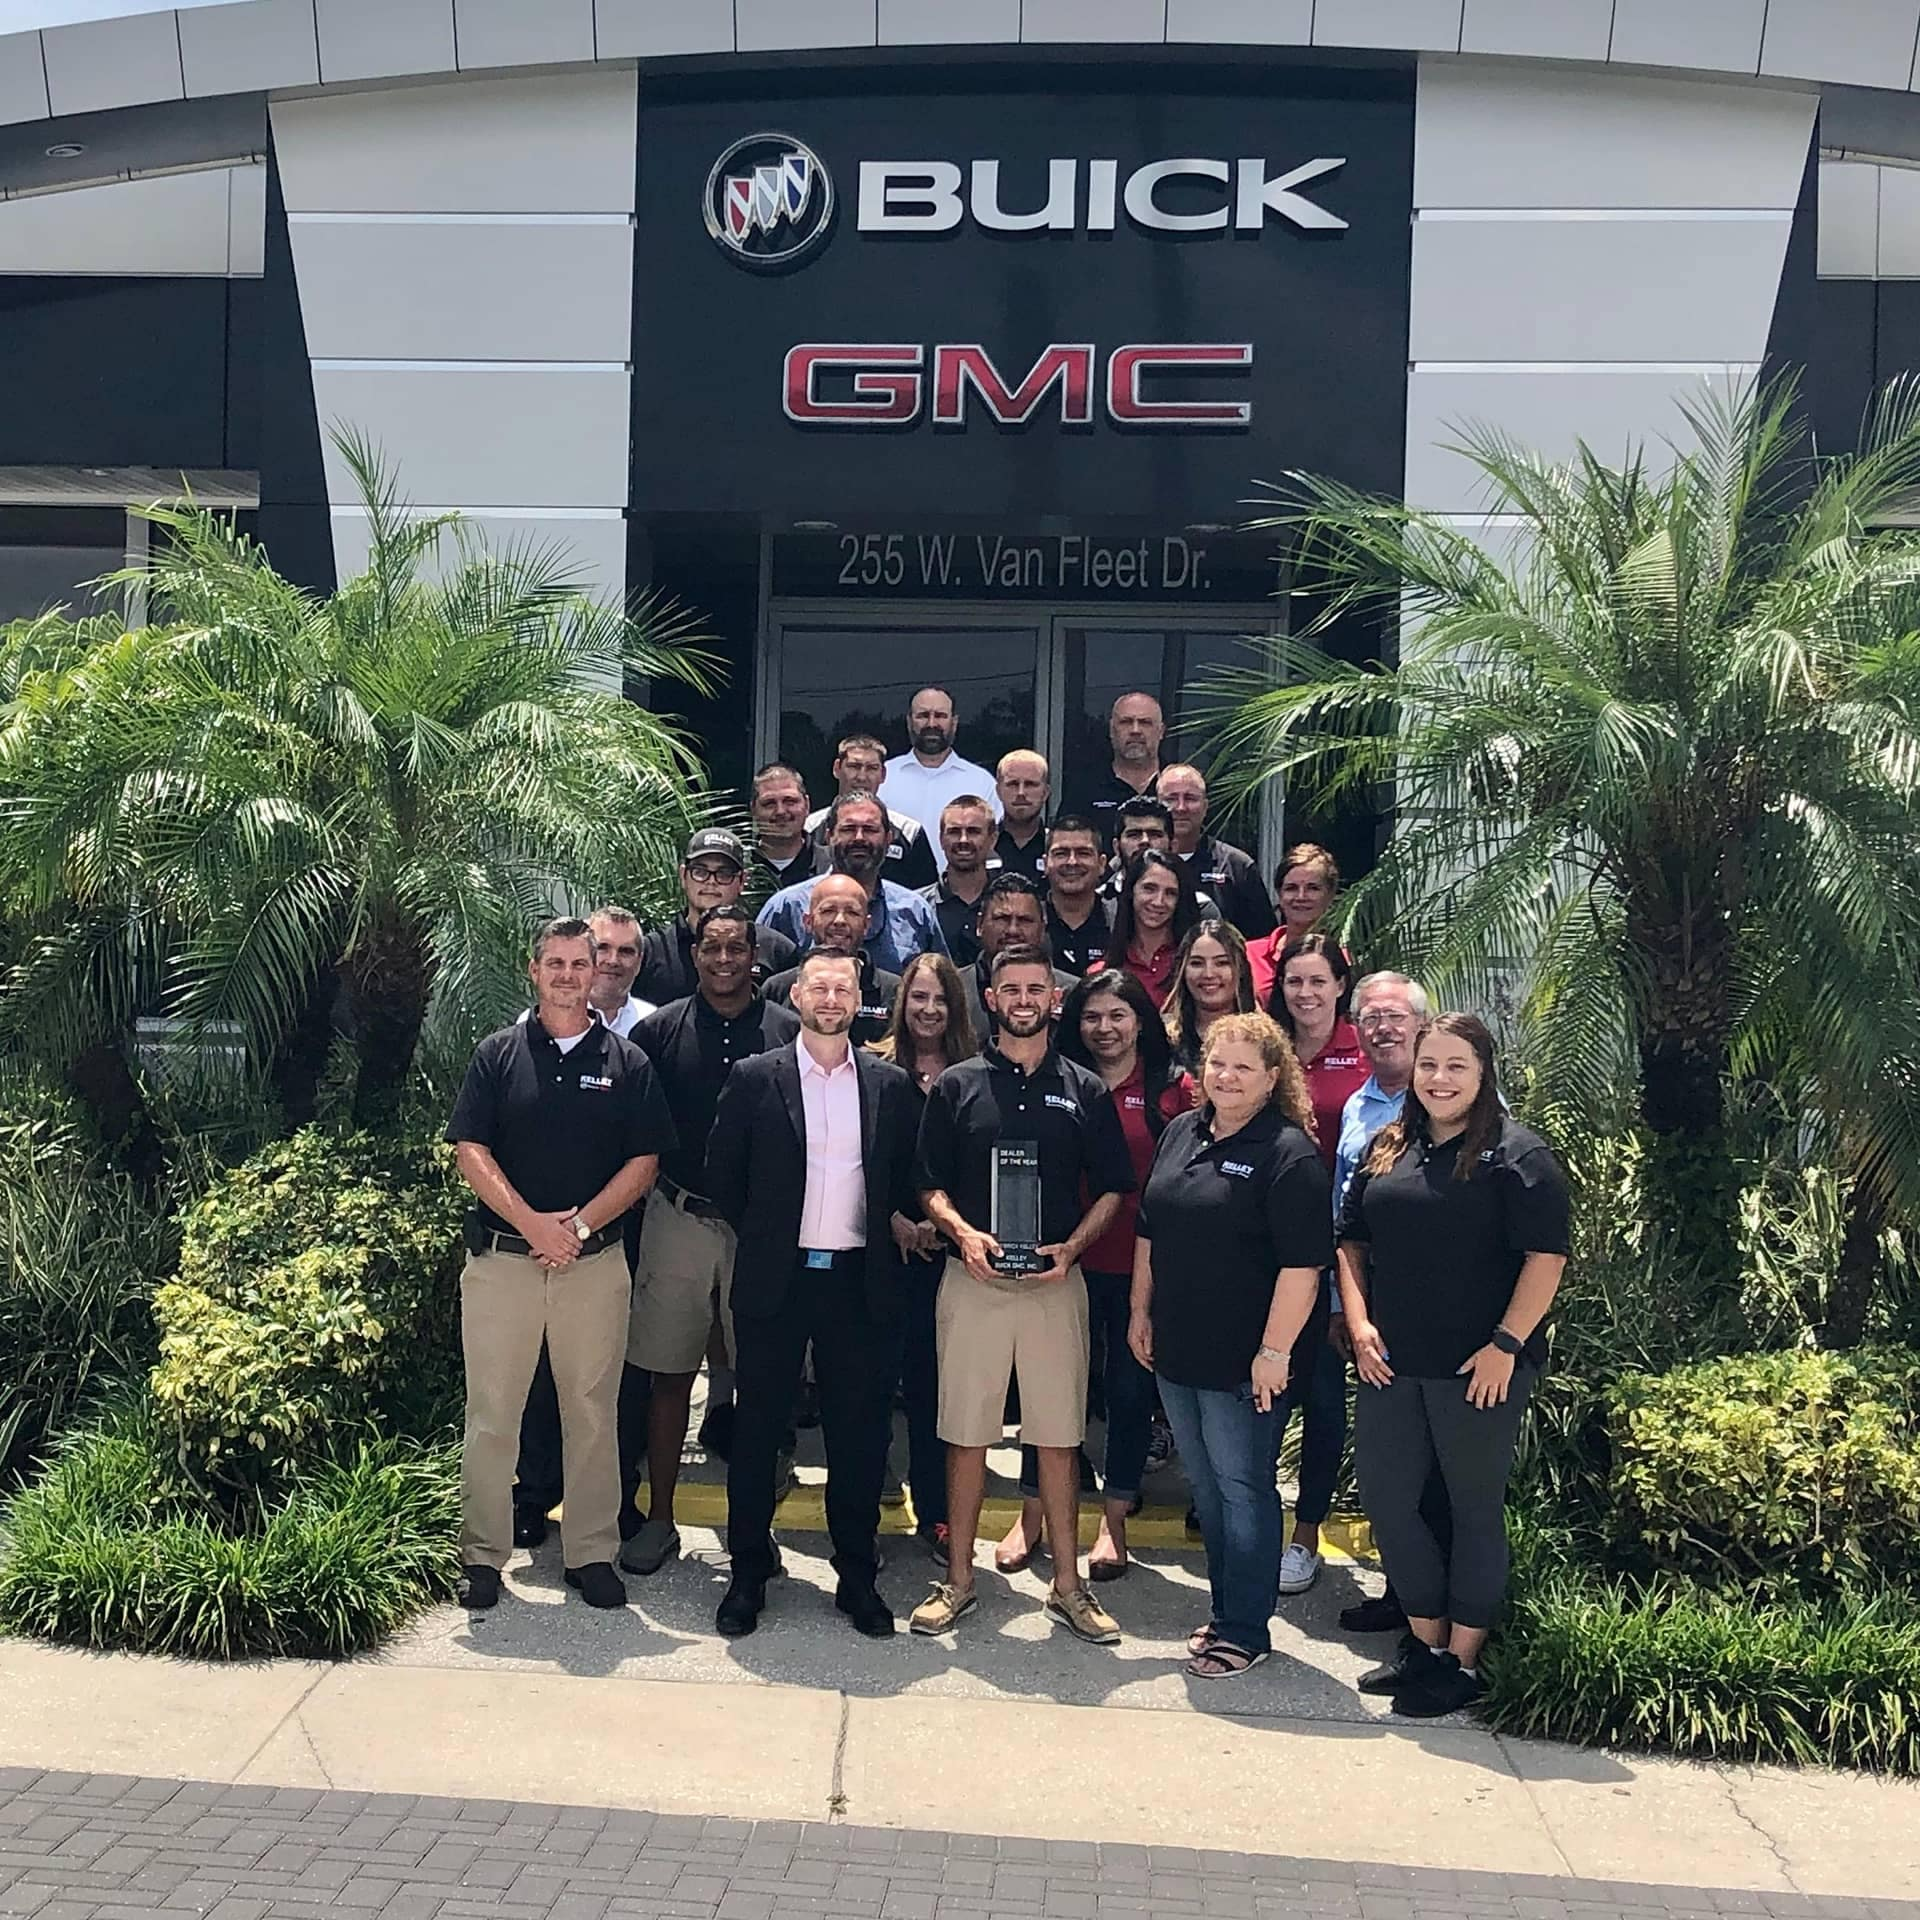 Kelley Buick GMC Dealership